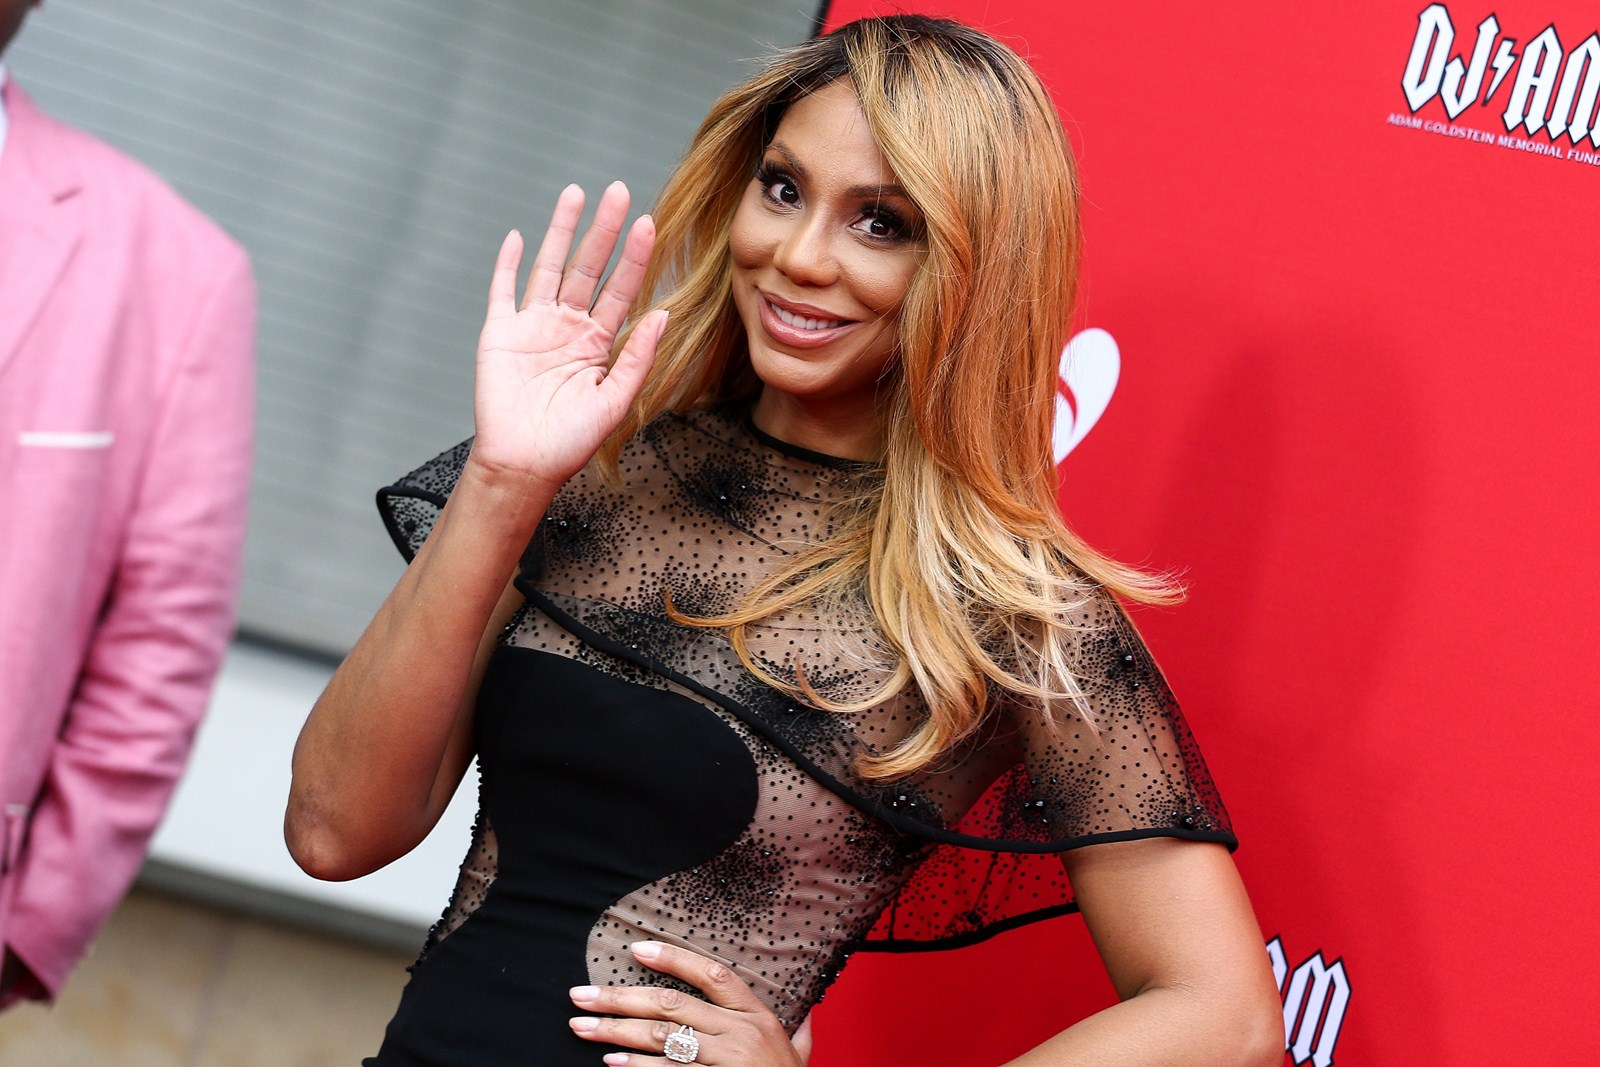 Tamar Braxton Hospitalized After Being Found Unresponsive in Her Hotel Room in Possible Suicide Attempt